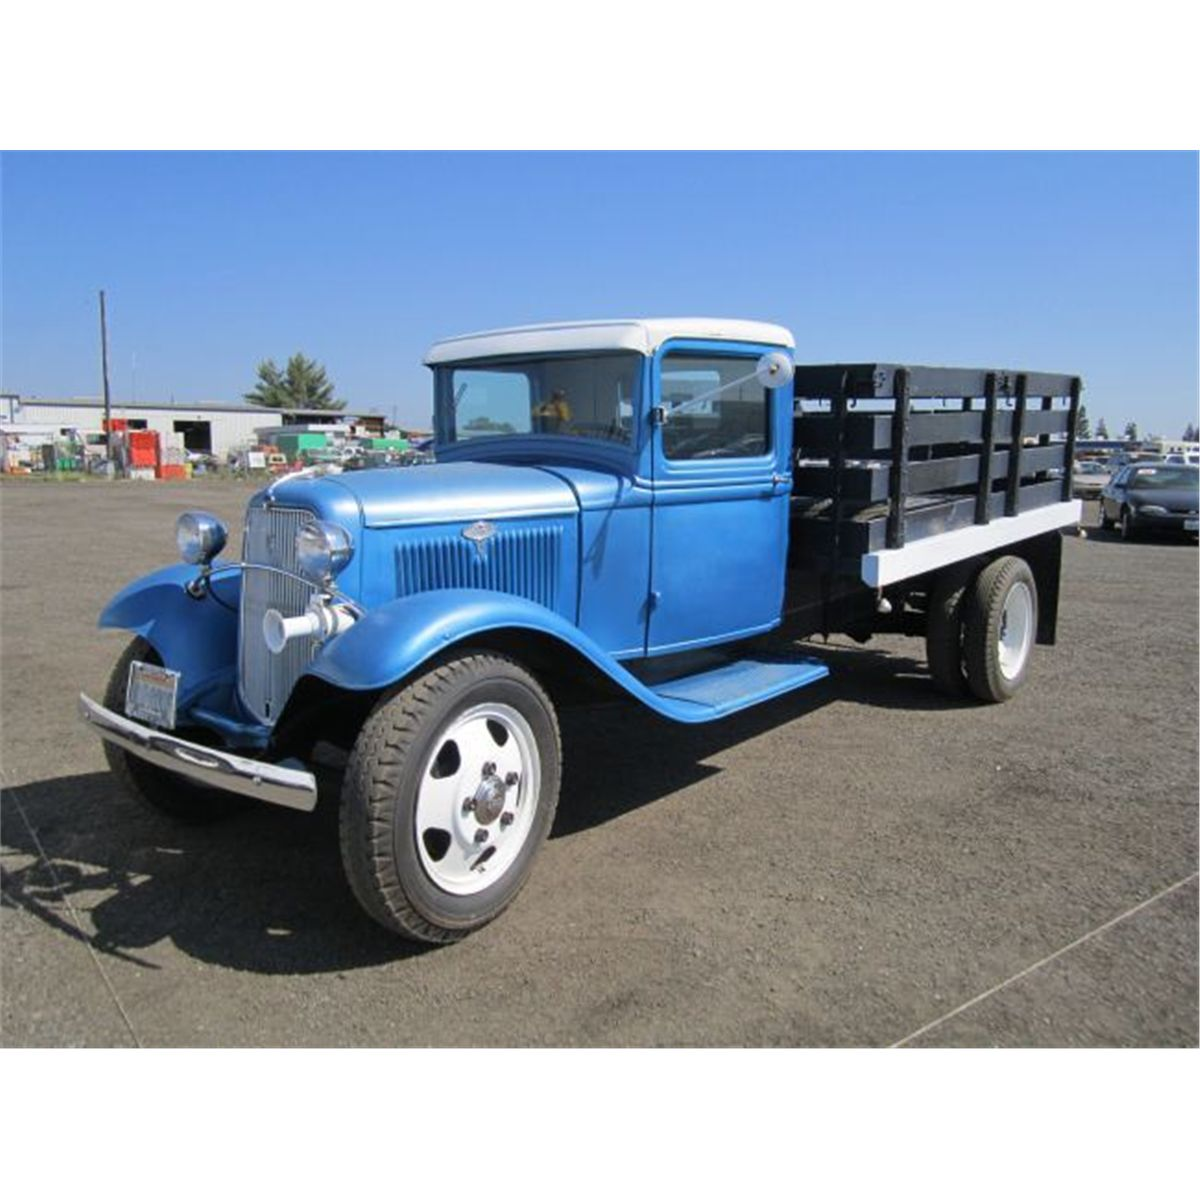 1933 Ford S/A Stake Side Flatbed Truck